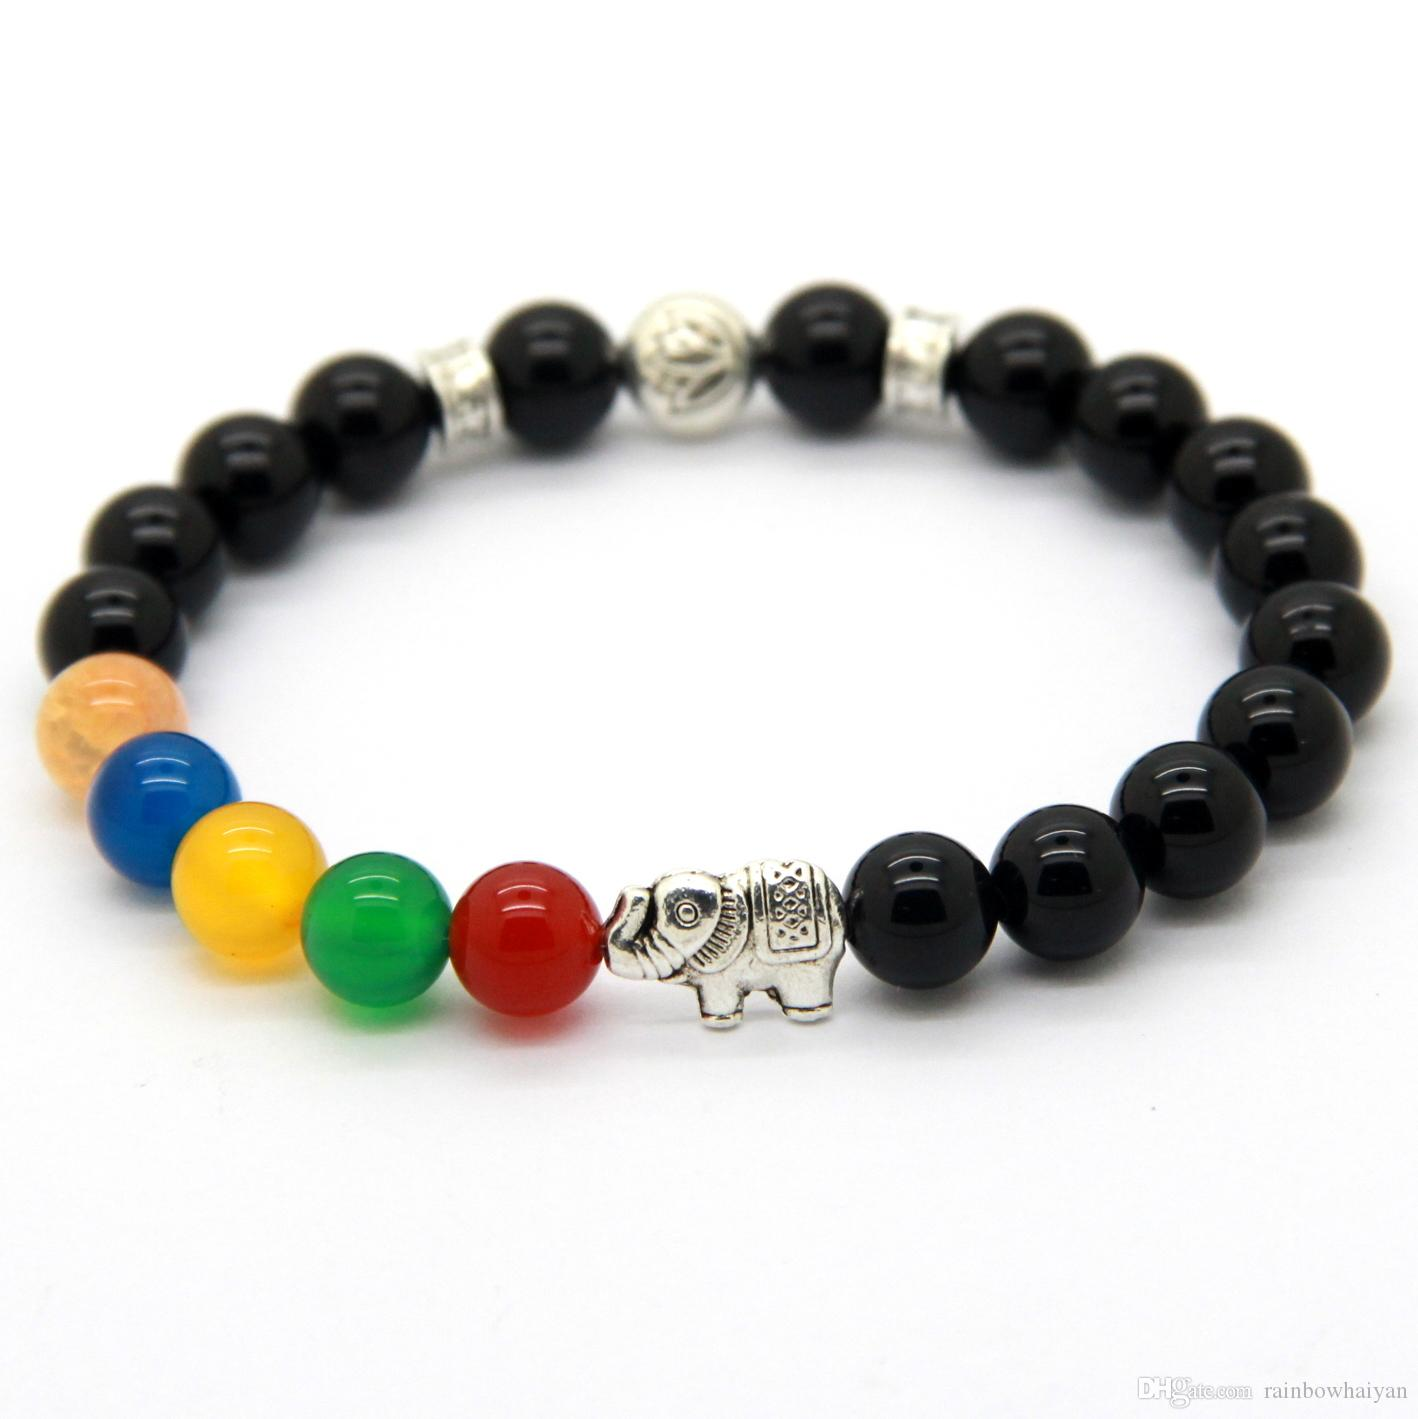 gifts chakra spiritual serendipity jewelry good fortune luck for pin bracelet her